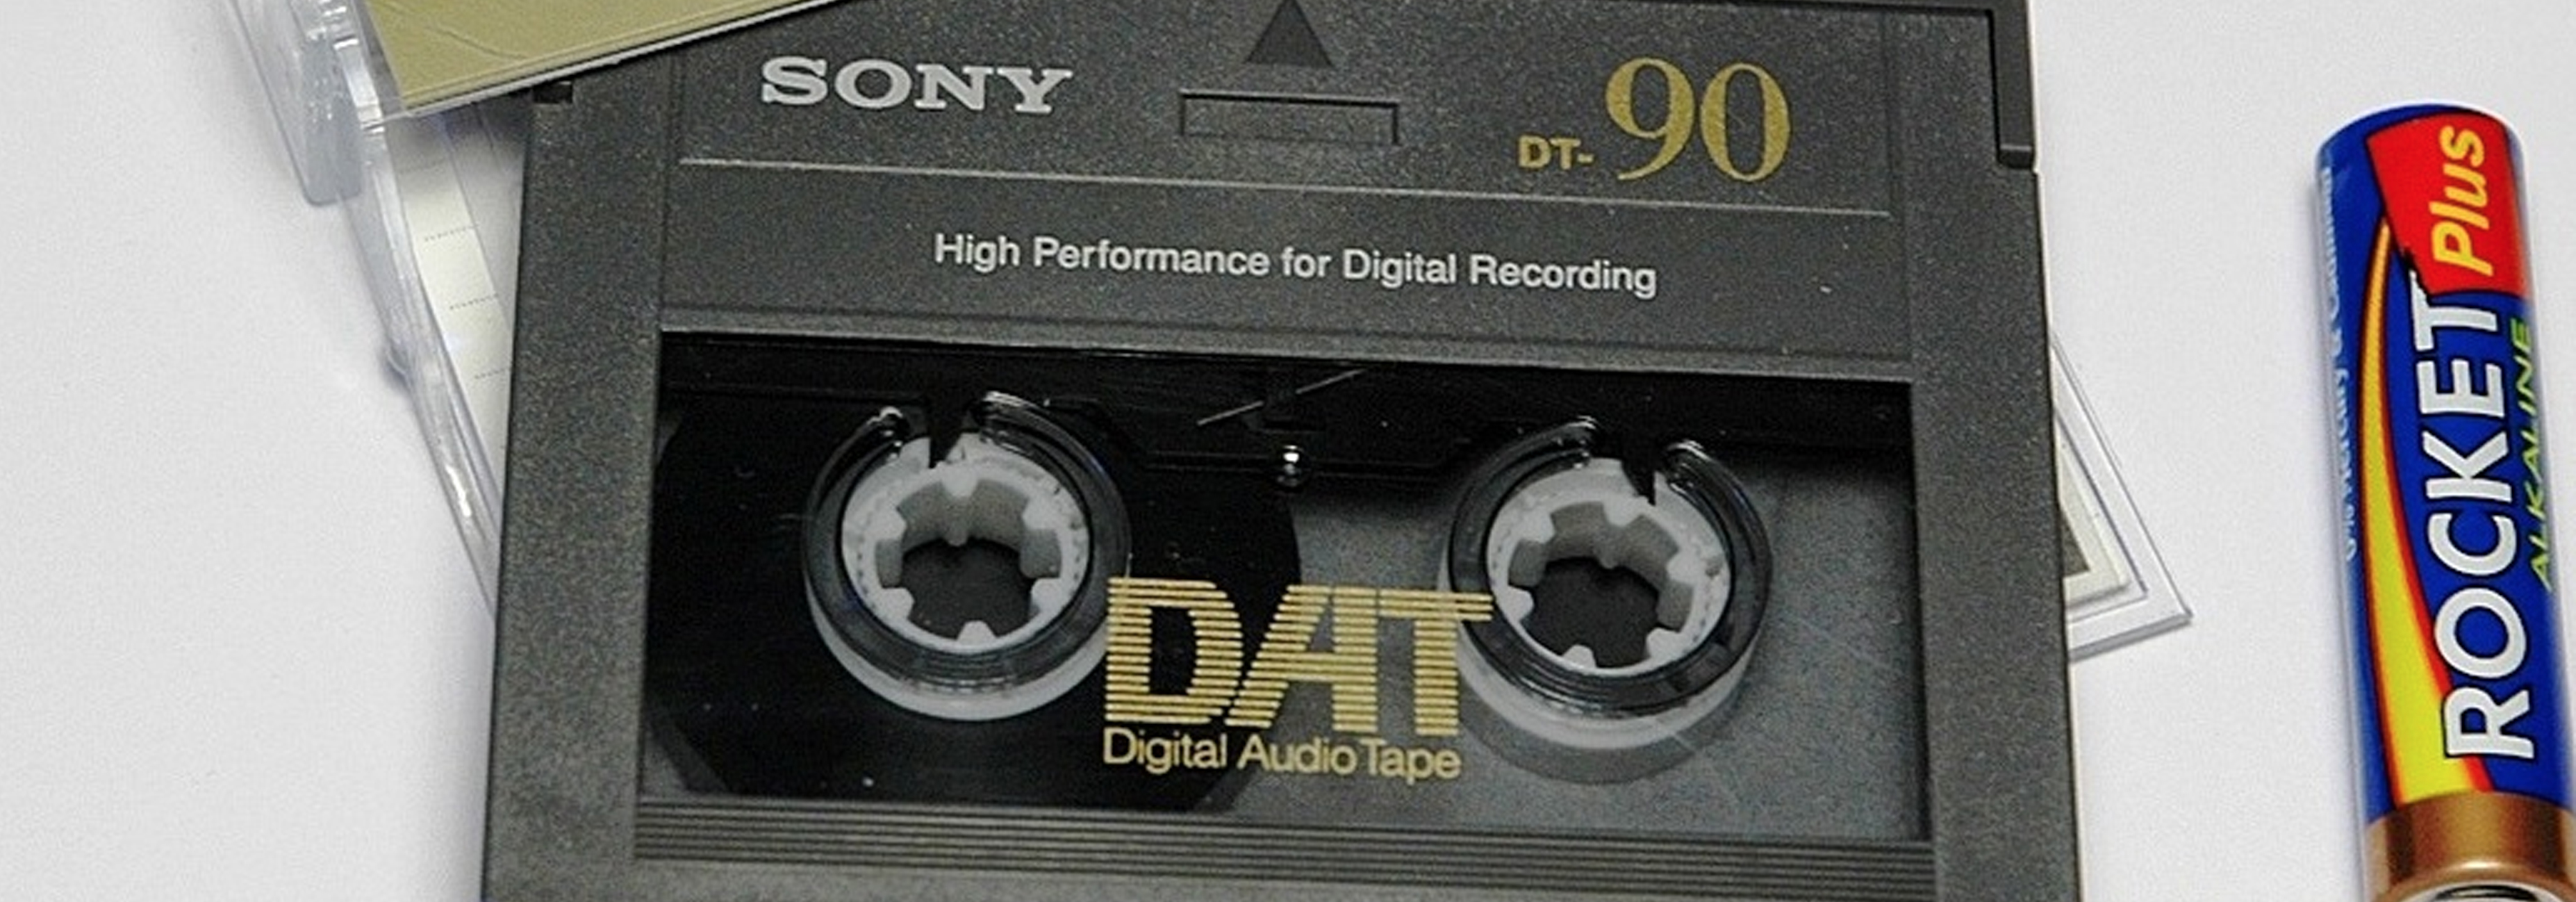 Digital Audio Tapes